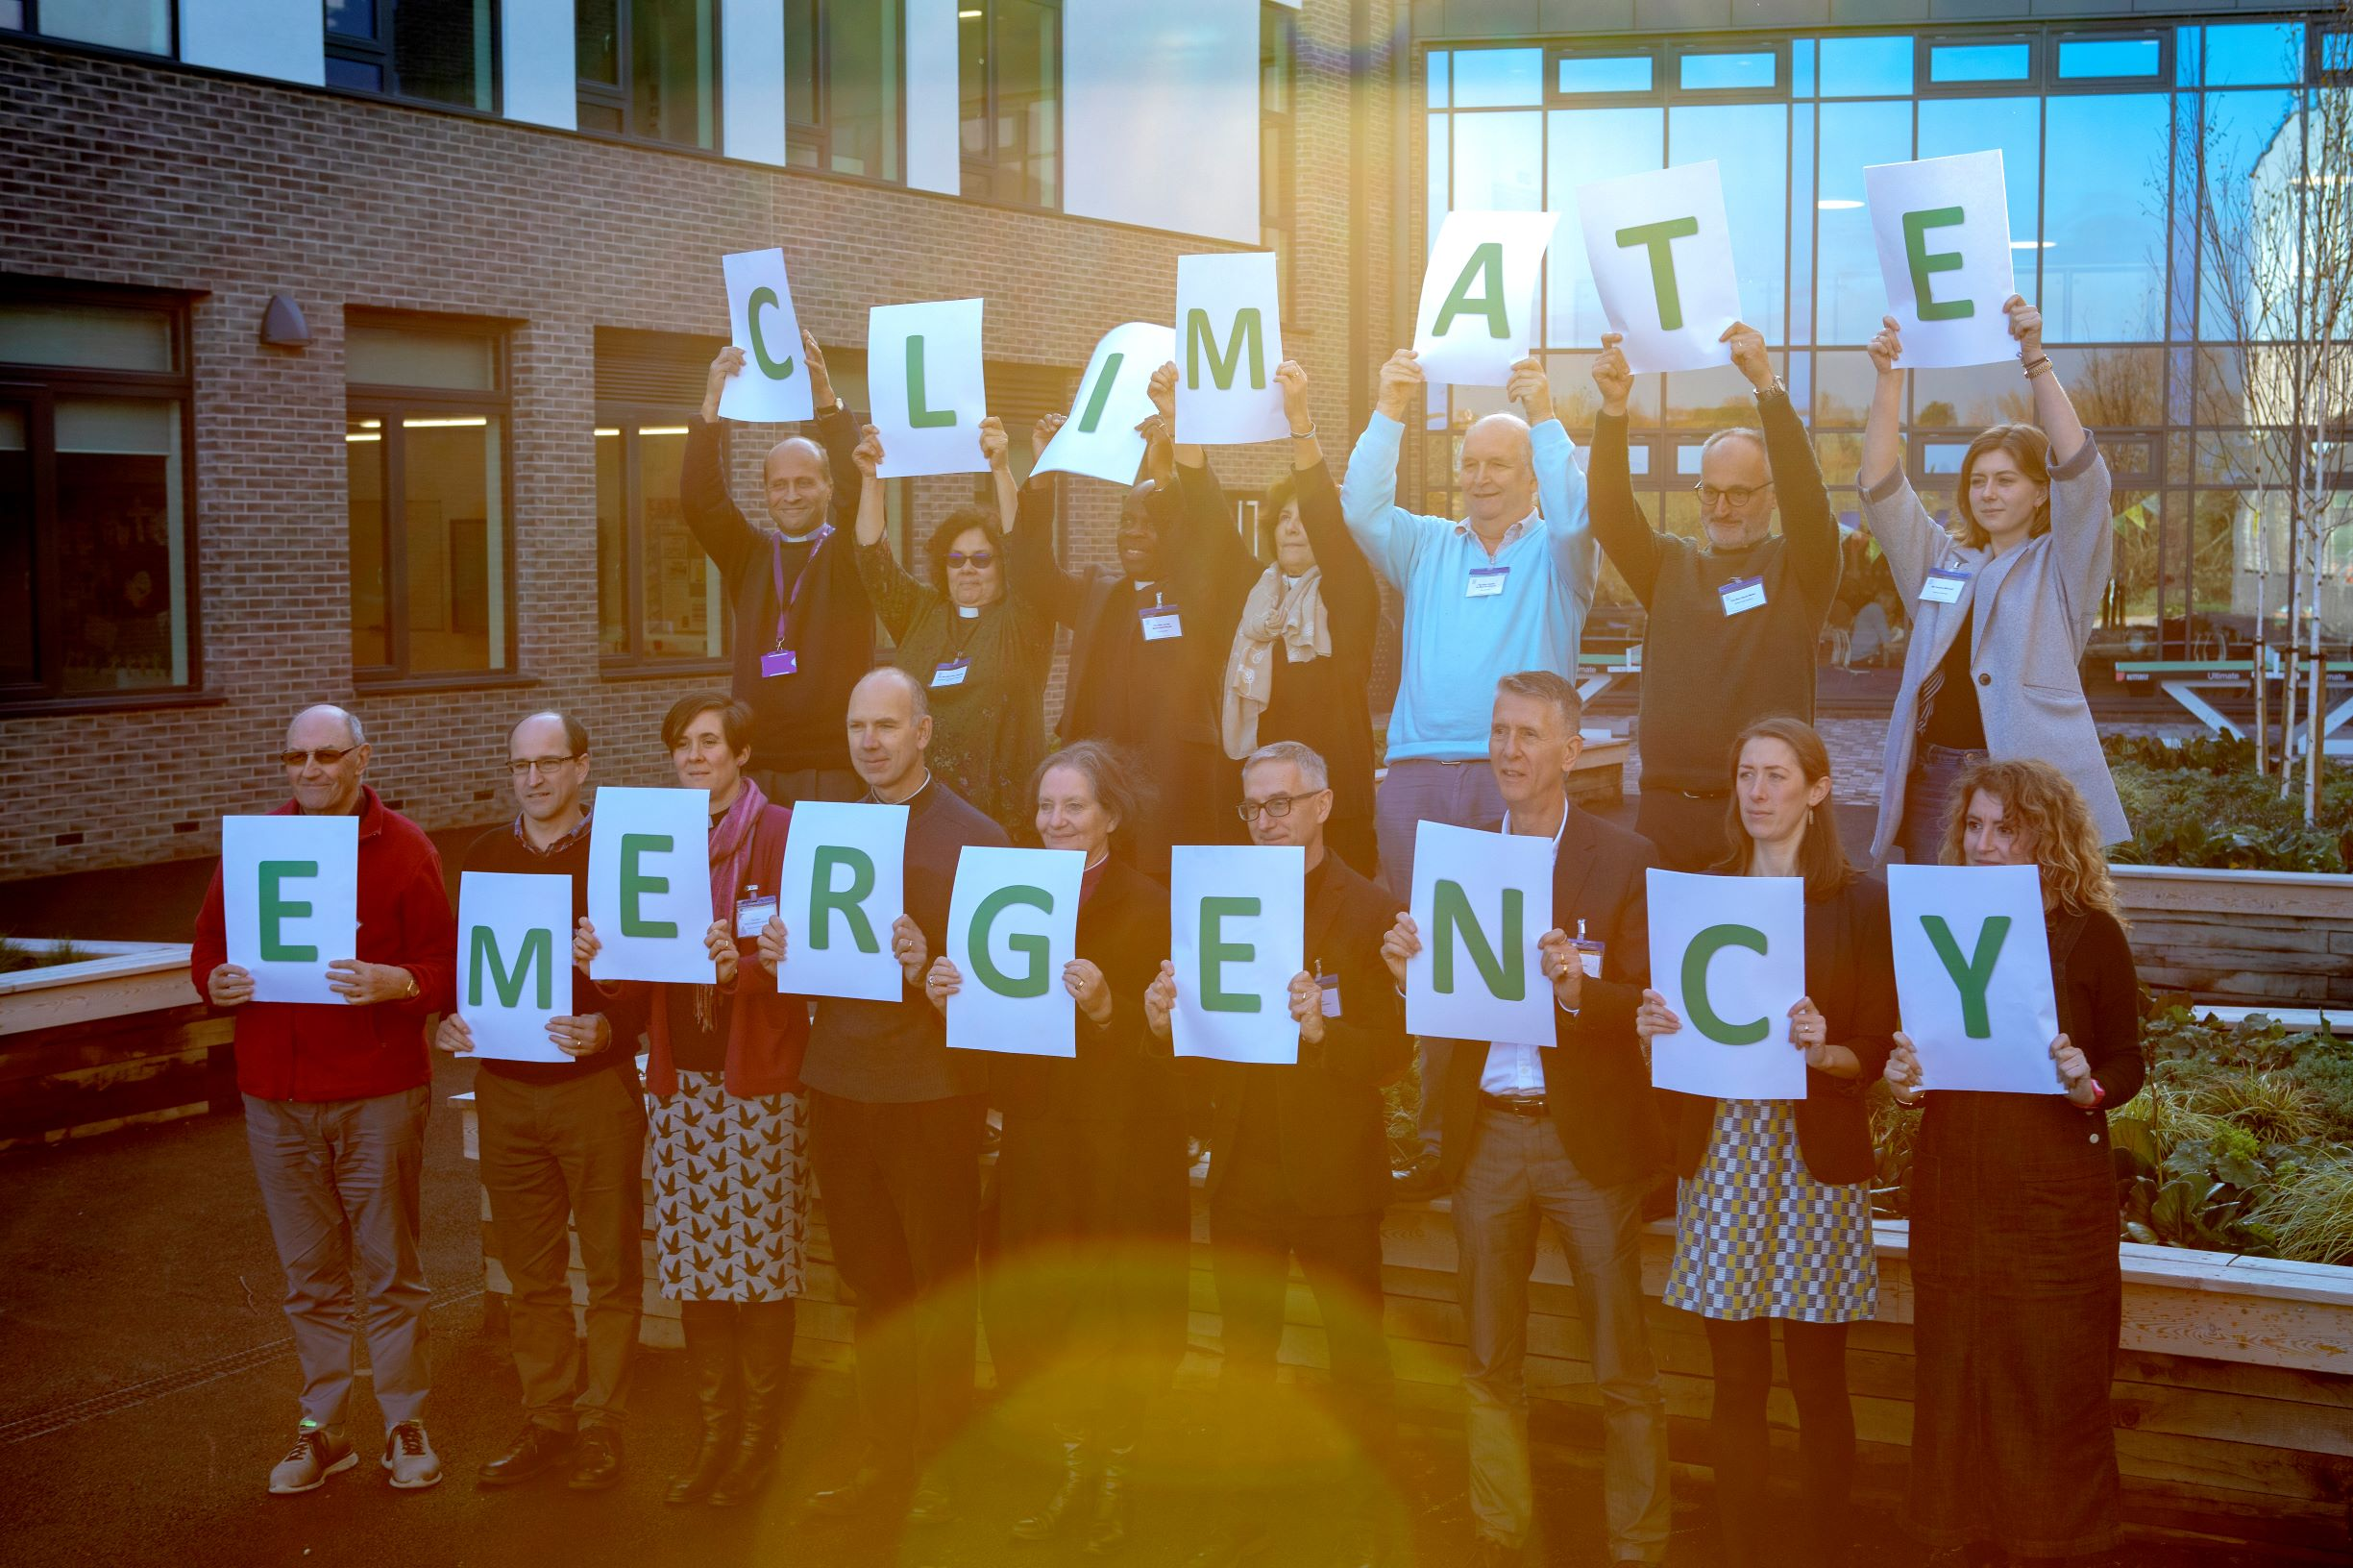 Open We've declared a climate emergency!